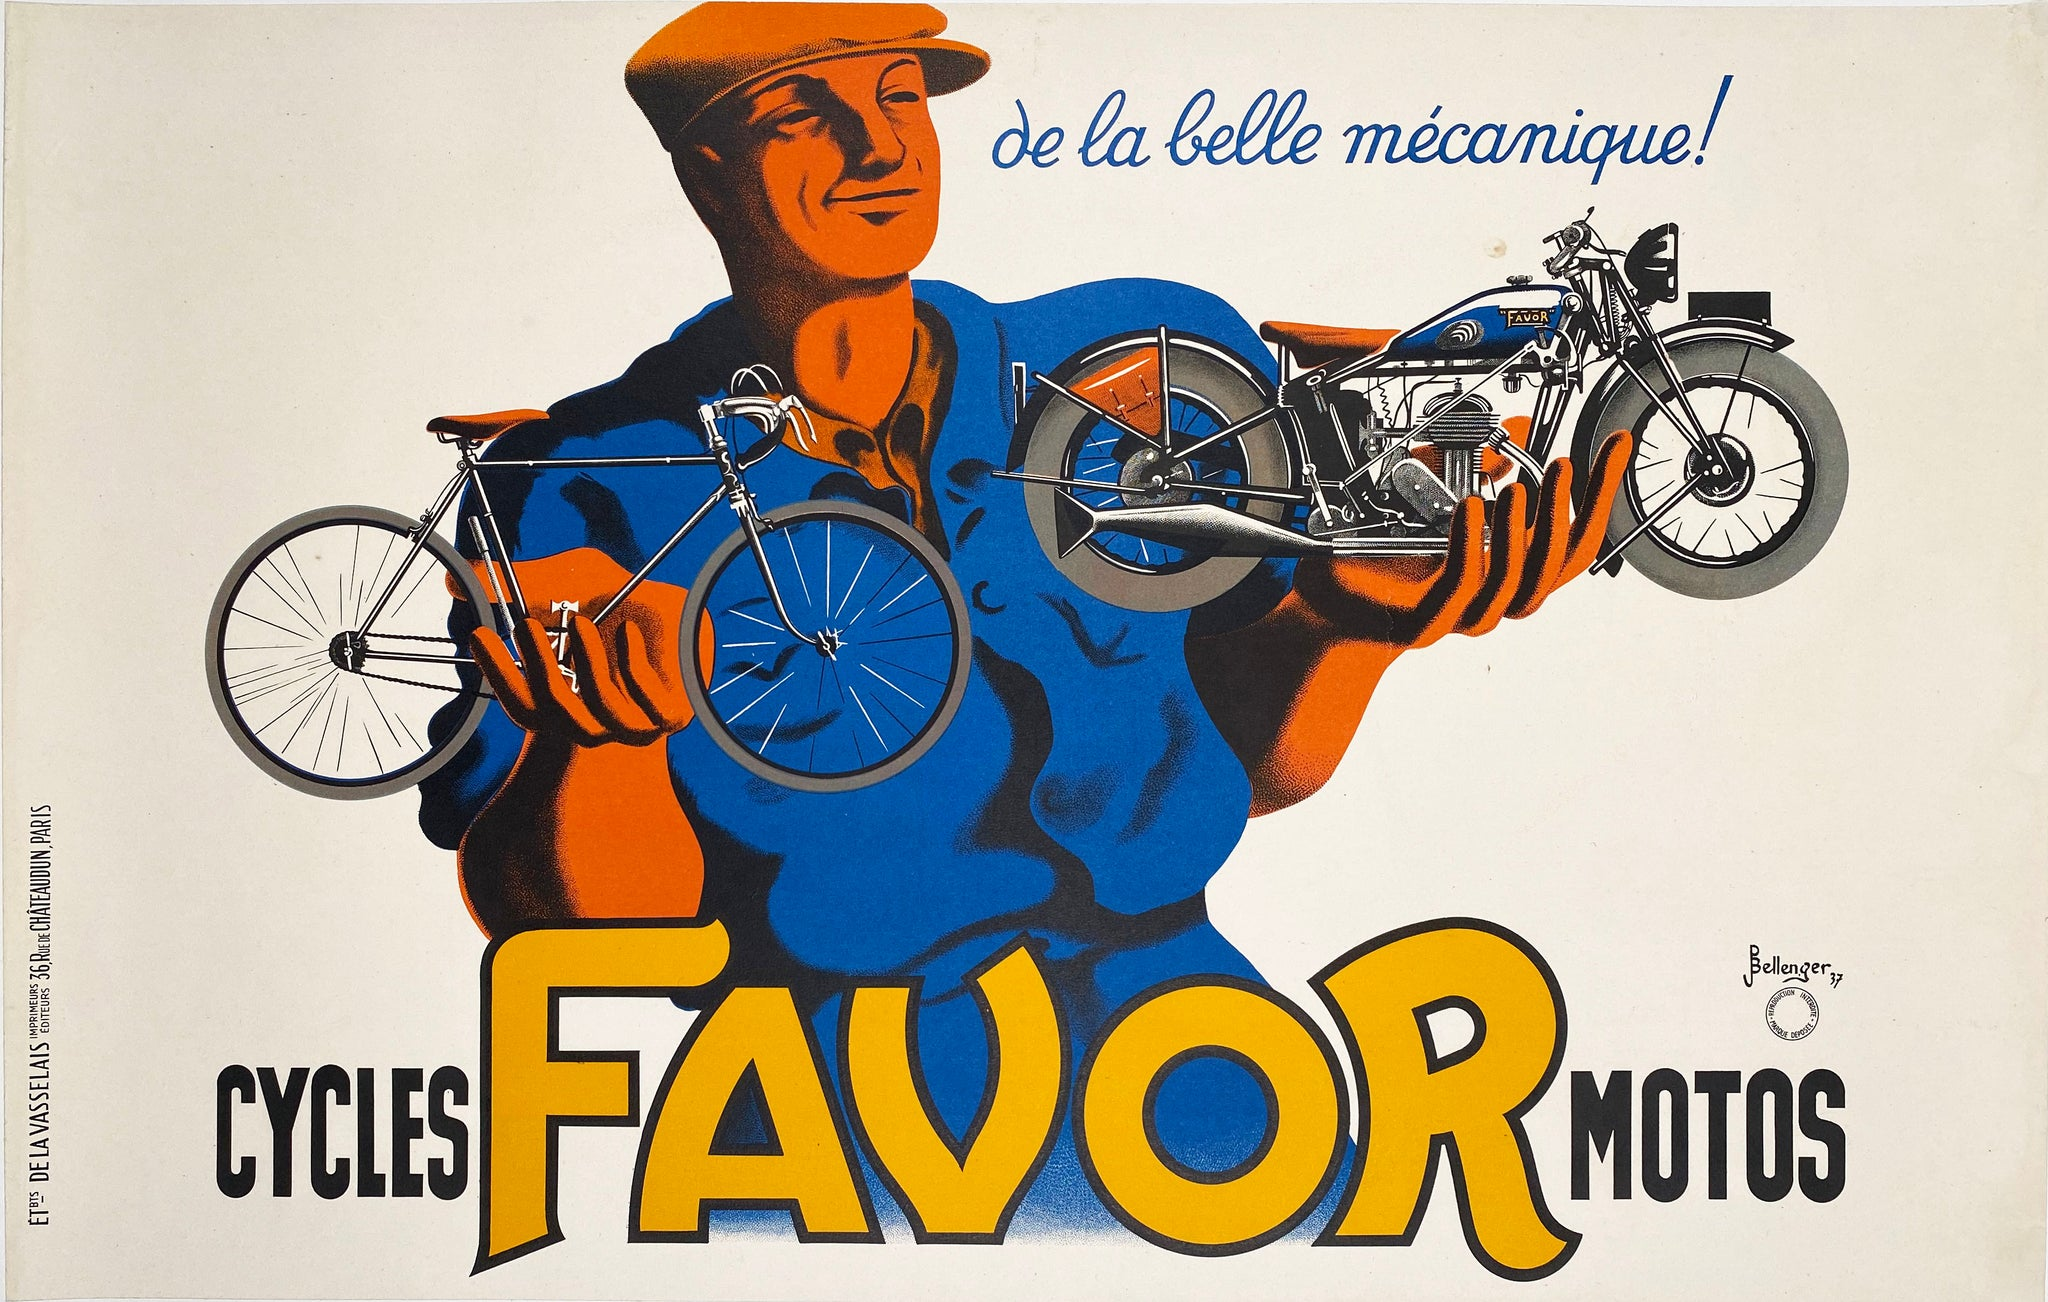 FAVOR - Vintage French cycles poster 1937